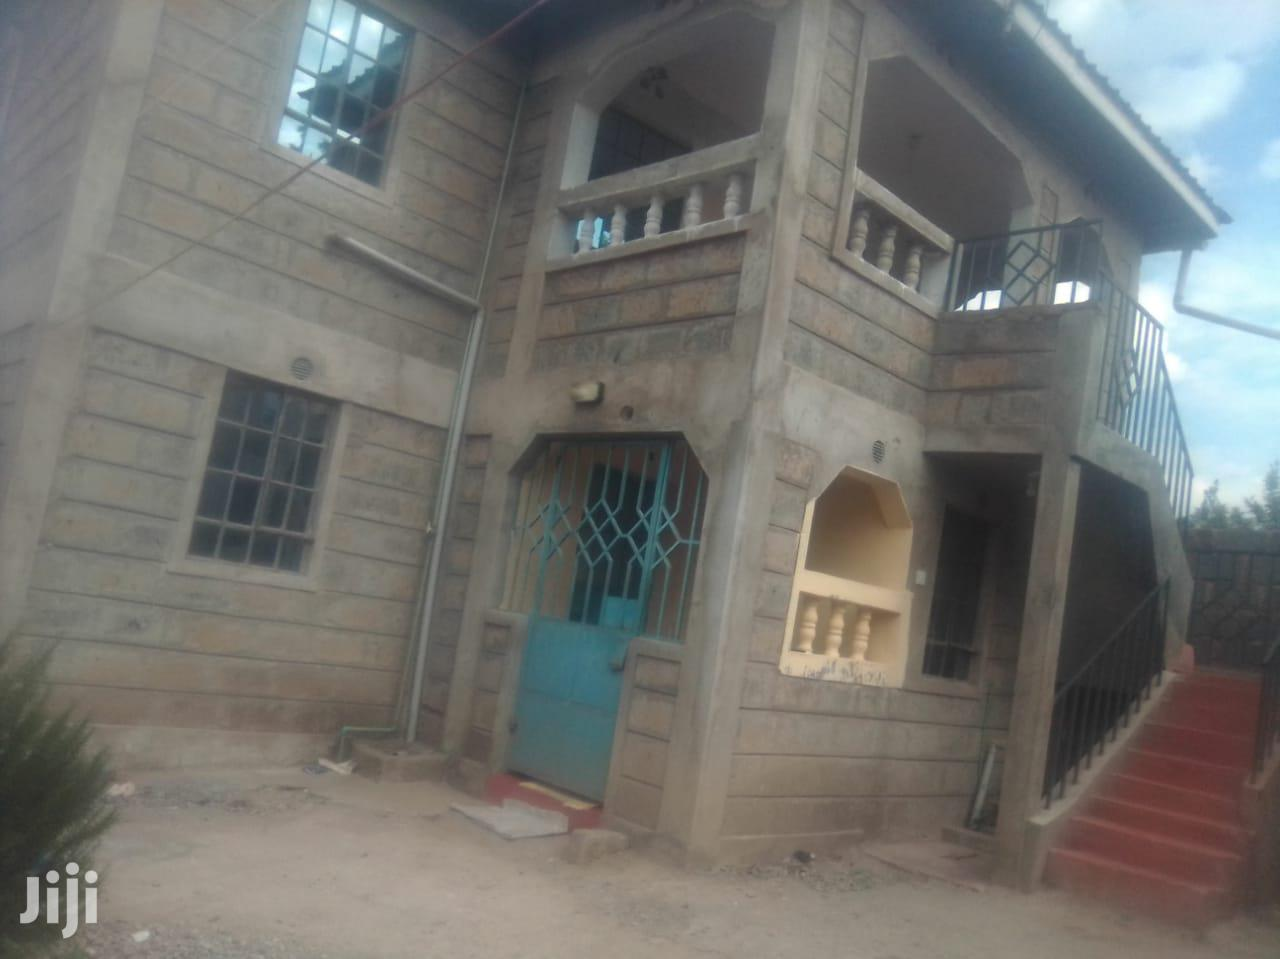 2&3 Bedroom Hse + 5 Rentals N A Shop Behind Dhillons Ngolba | Houses & Apartments For Sale for sale in Ngoliba, Kiambu, Kenya